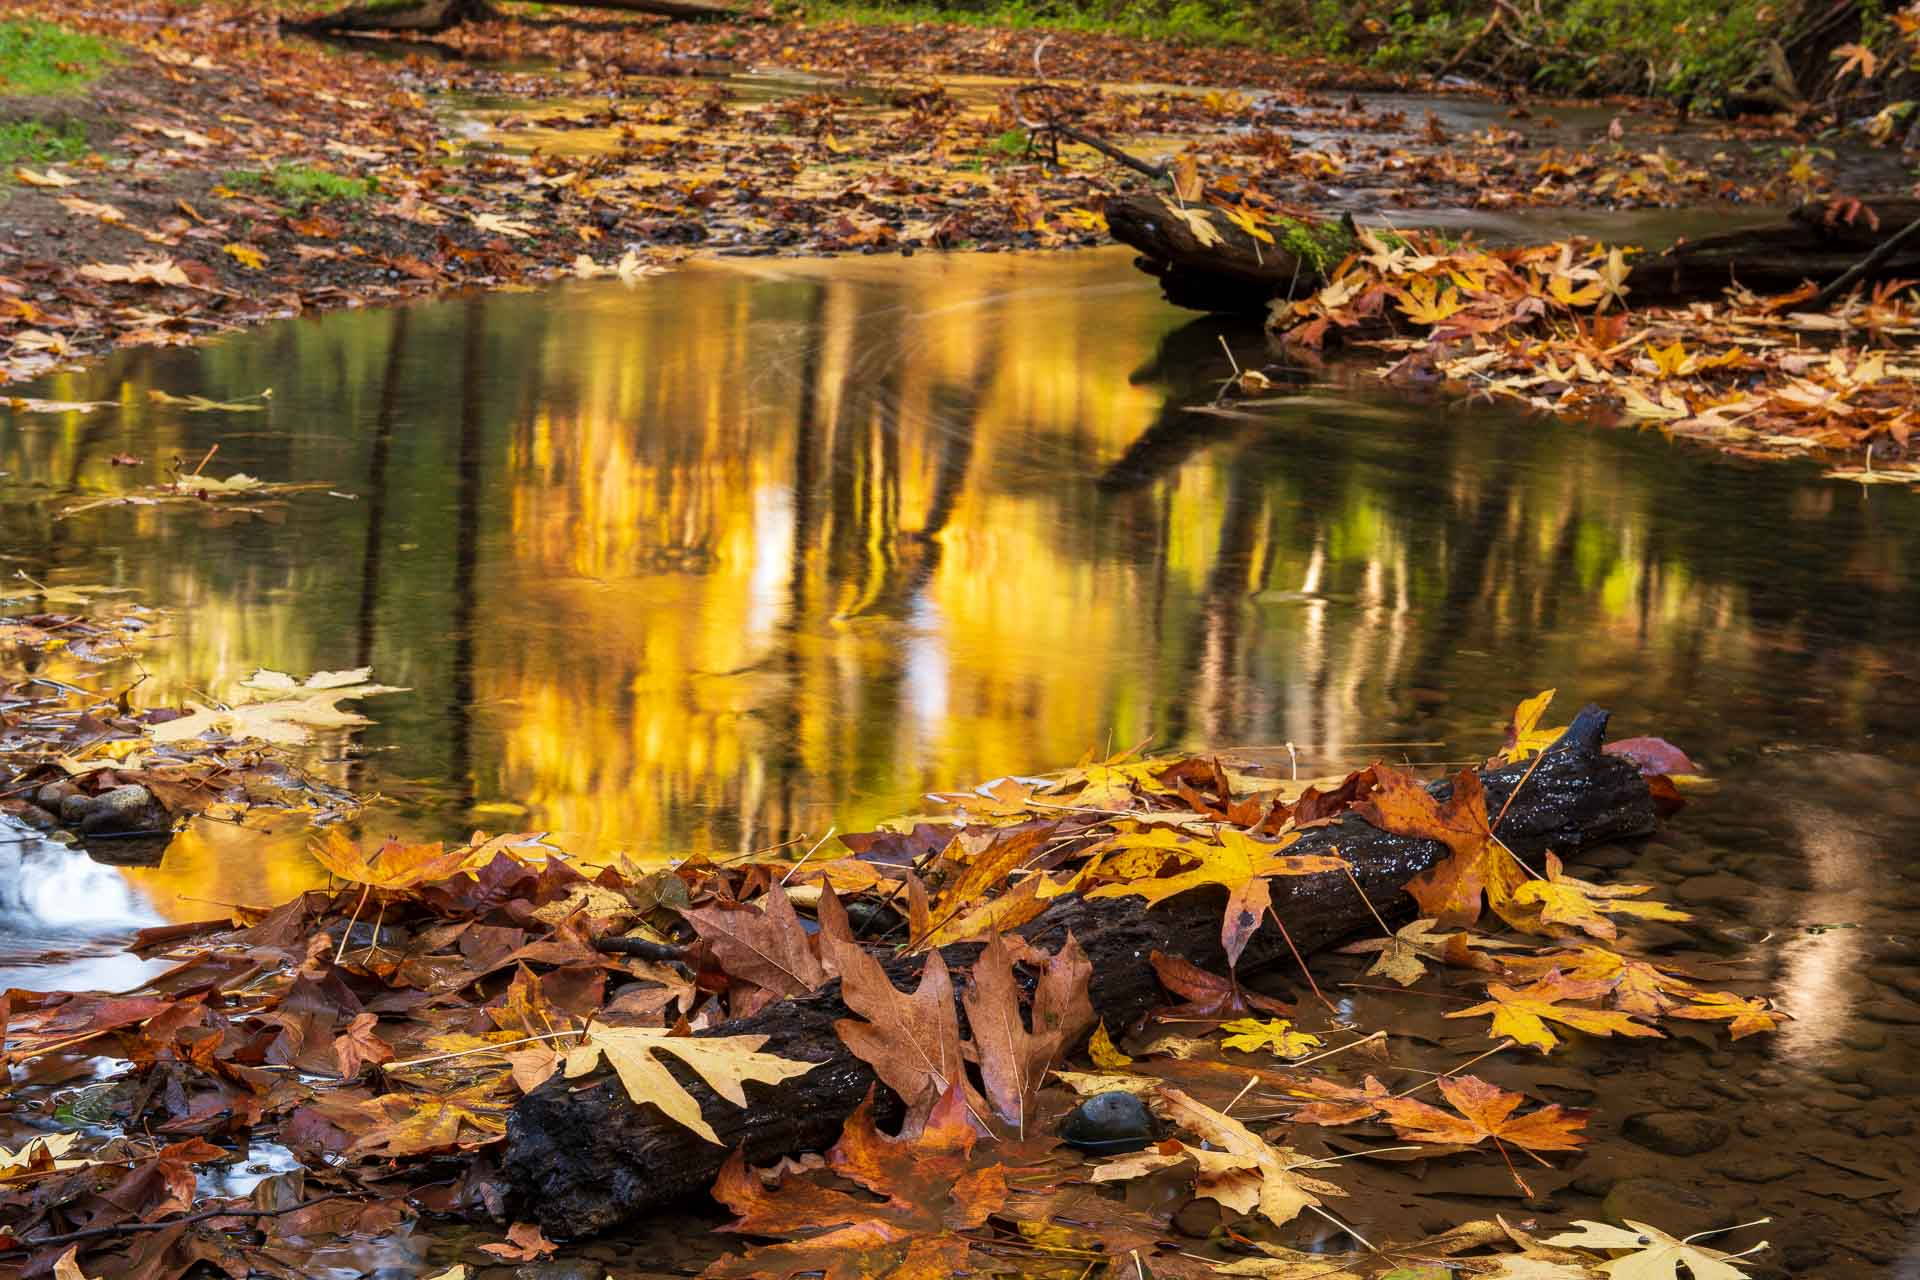 Reflections of autumn, creative photography by Dennis Ducklow